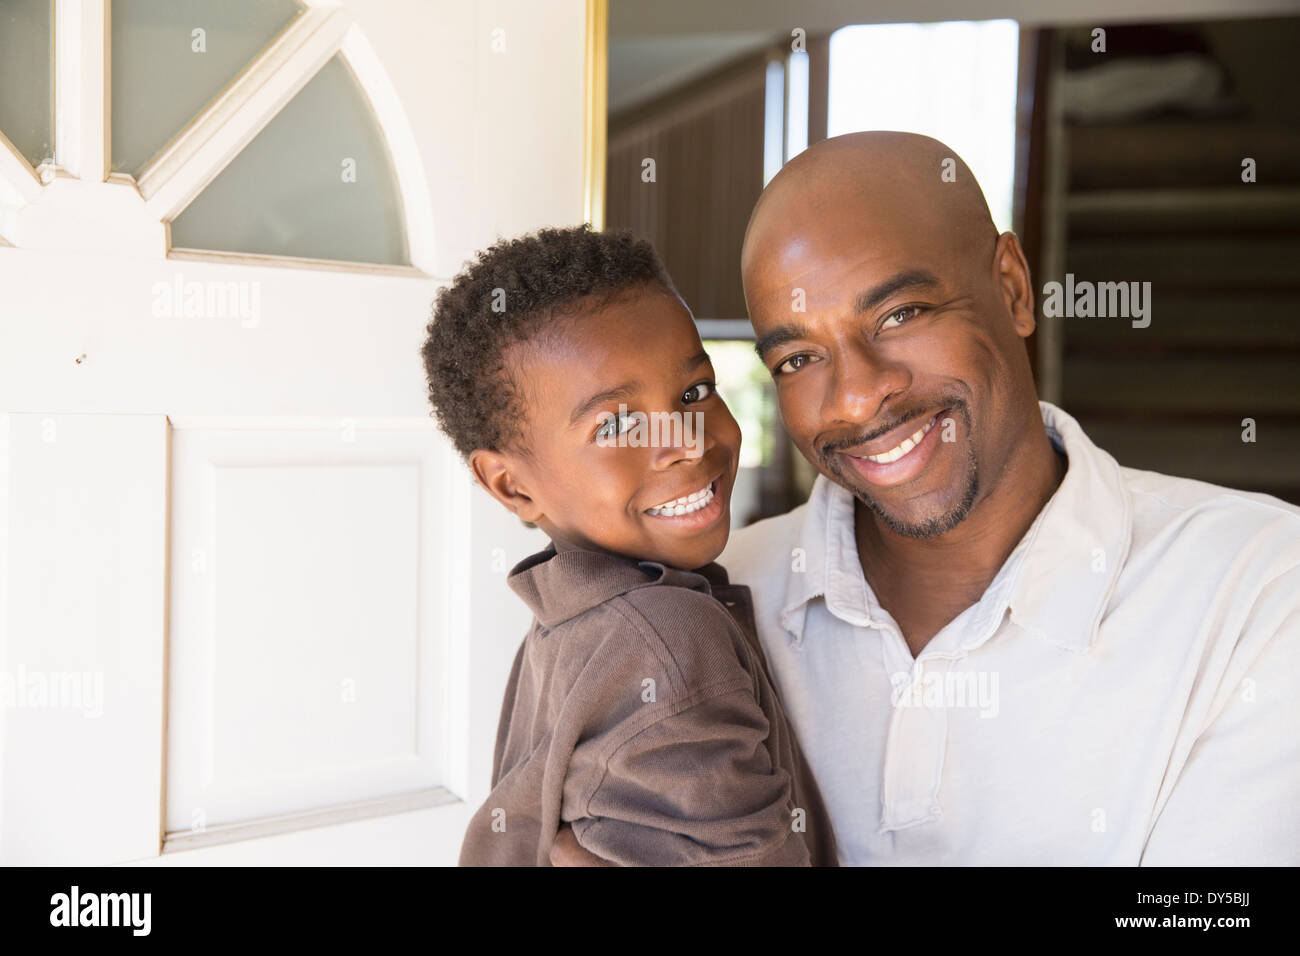 Portrait of mature man and son at front door - Stock Image